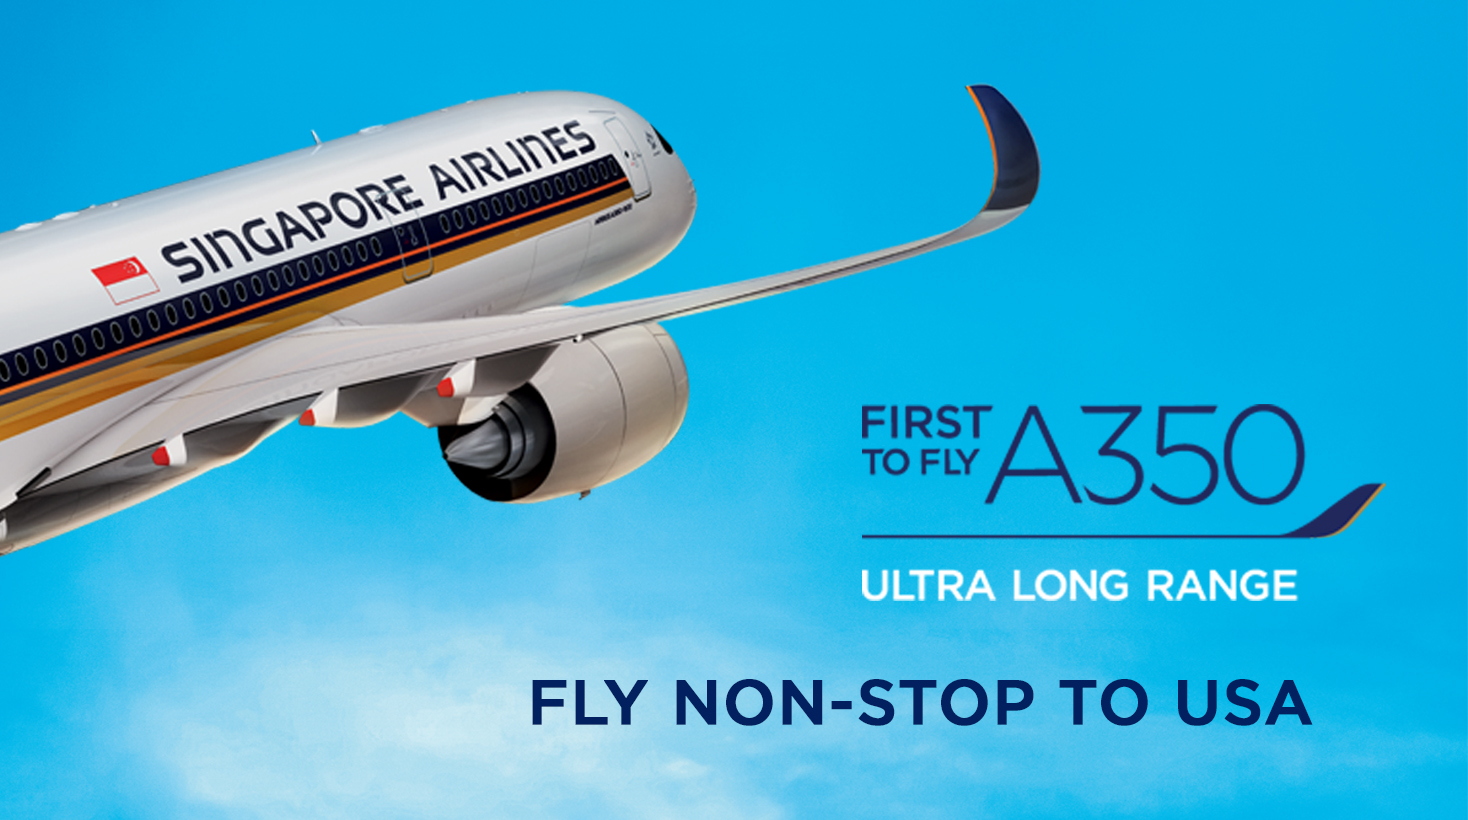 Non Stop Flights To Usa On Singapore Airlines Premium